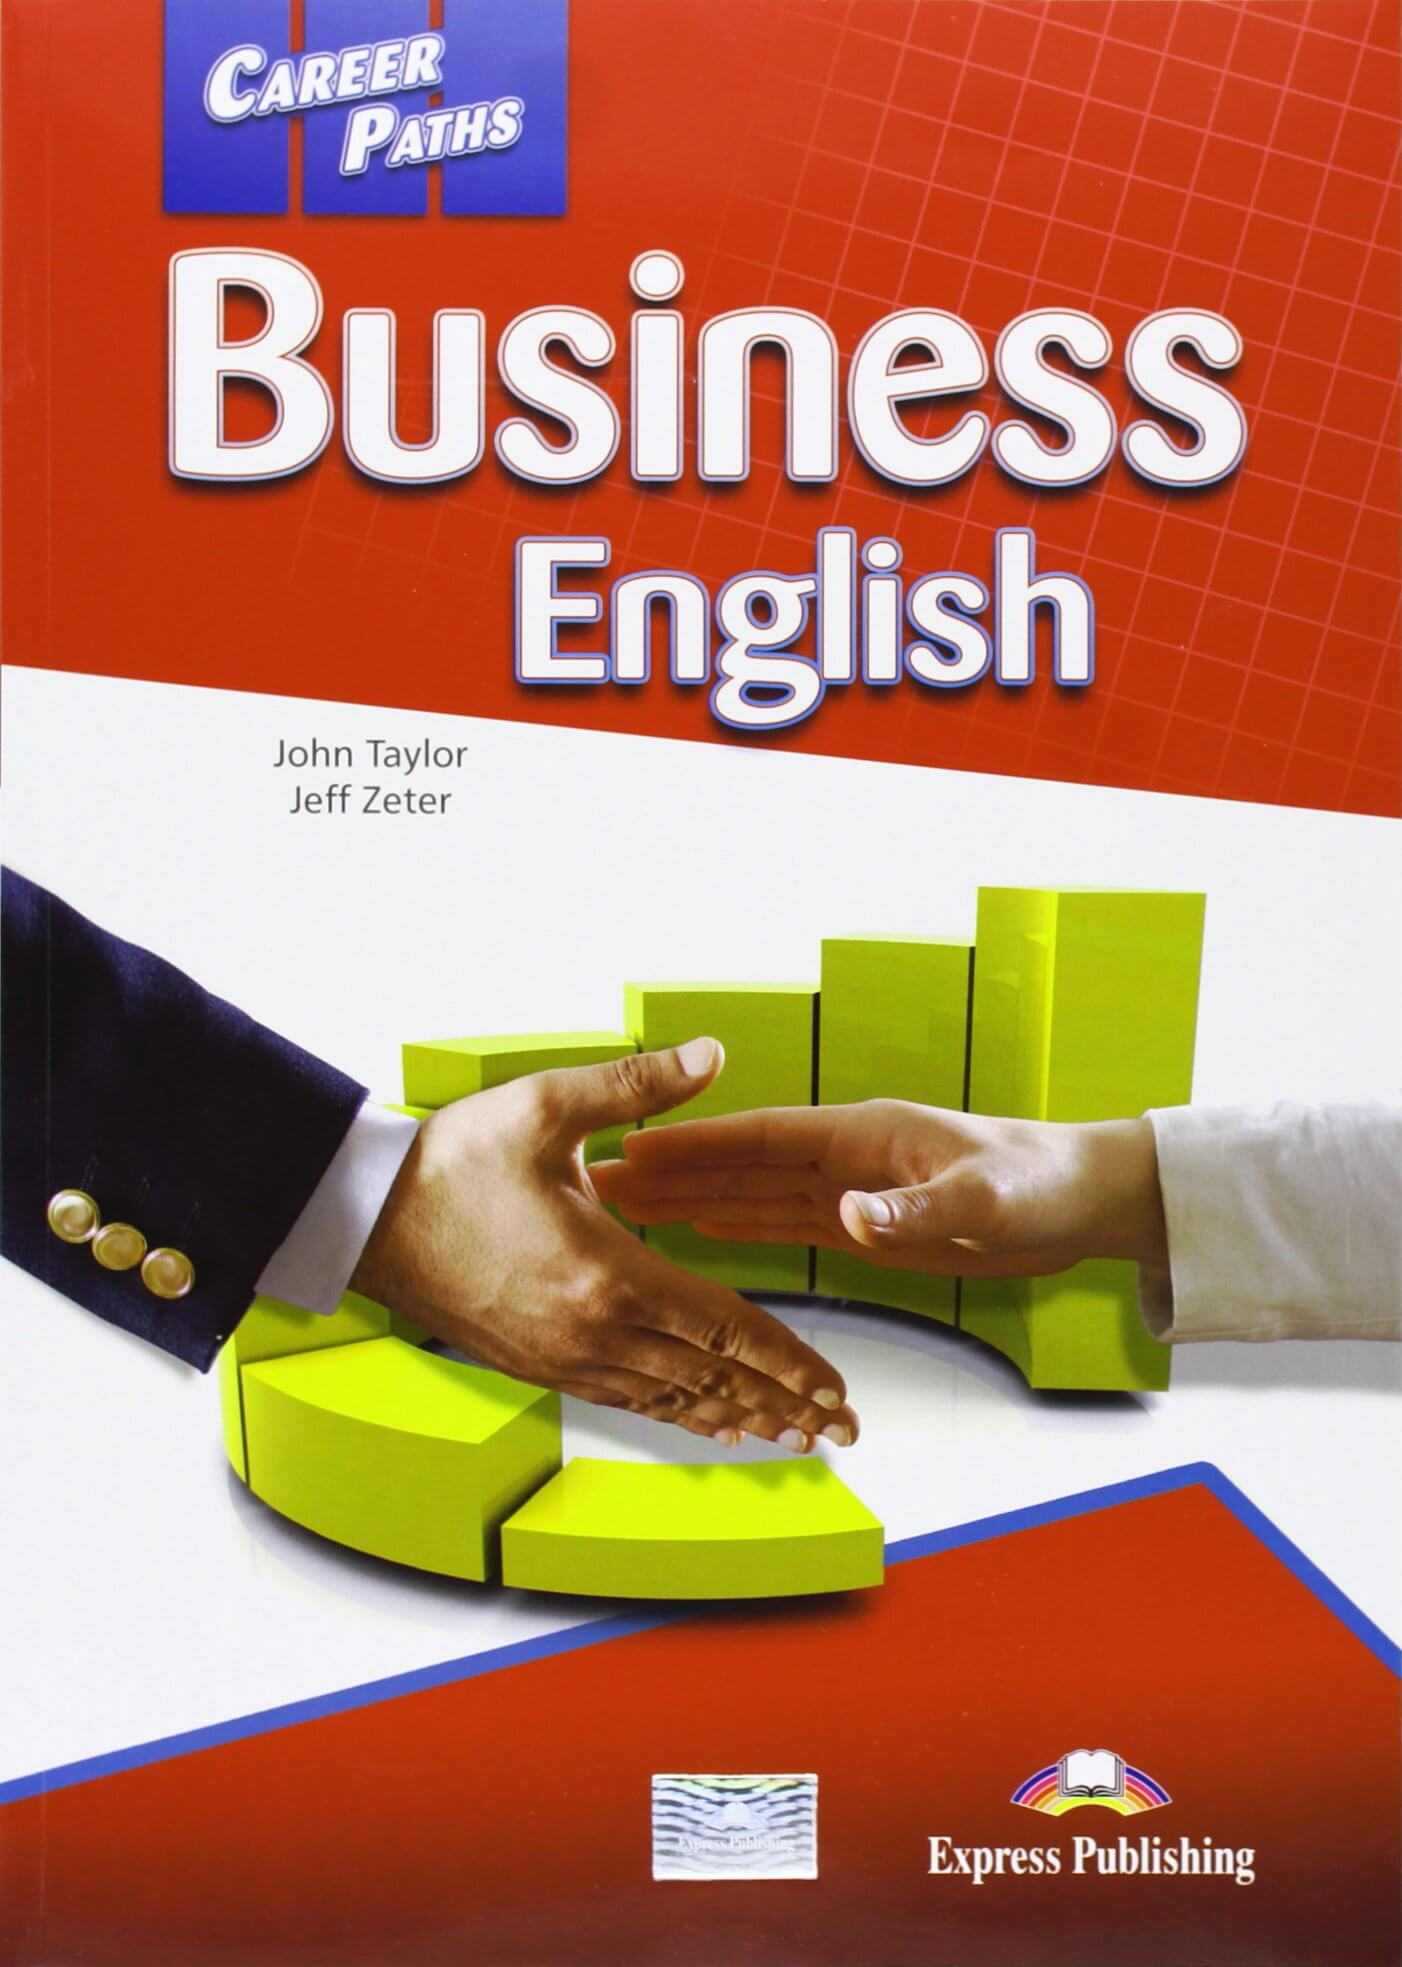 Business English: Student's Book (Career Paths)